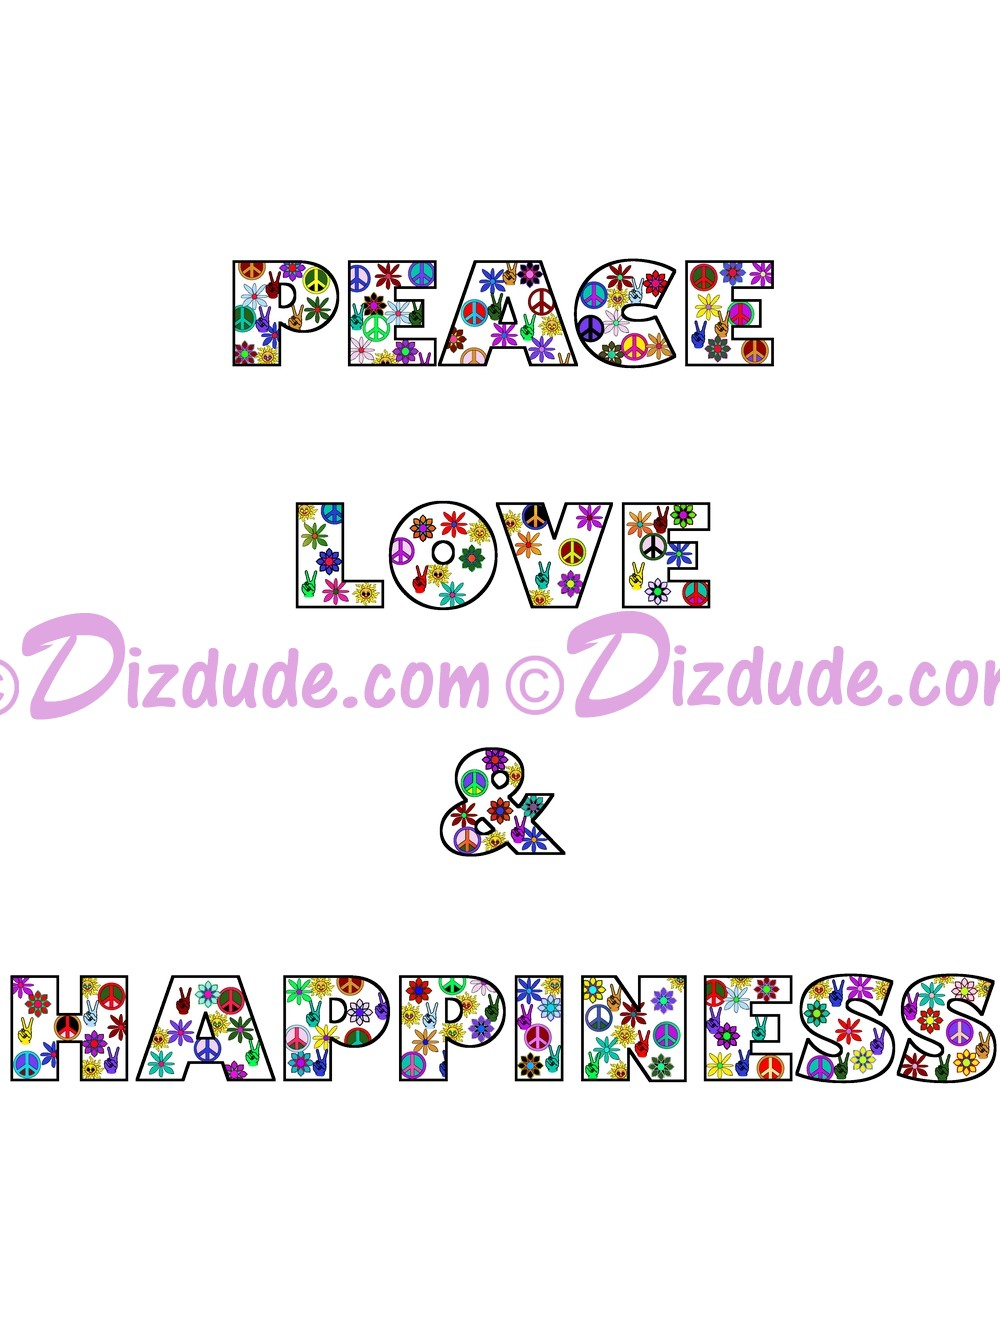 Peace Love & Happiness White Text T-Shirt or Tank Top (Tshirt, T shirt or Tee) © Hippieworks